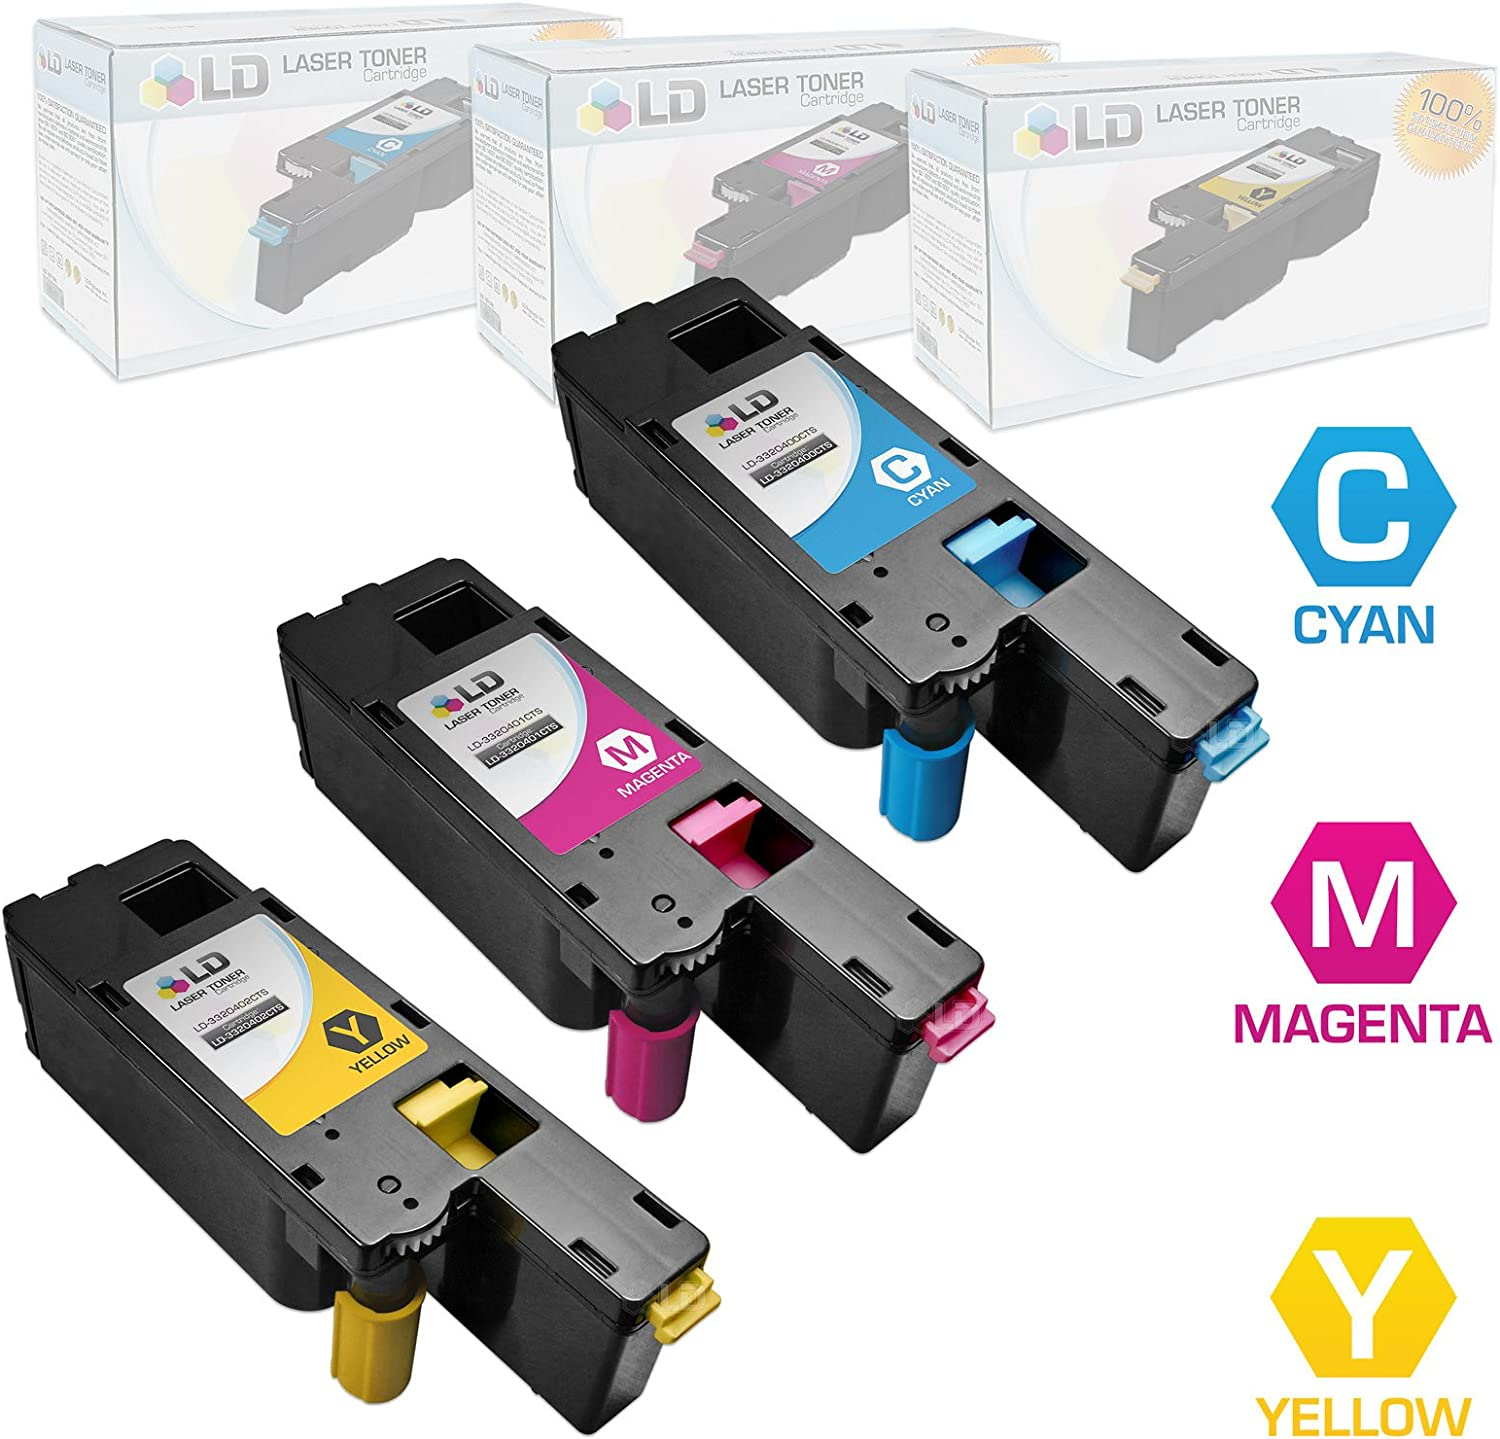 LD Compatible Toner Cartridge Replacement for Dell Color Laser C1660w (Cyan, Magenta, Yellow, 3-Pack)